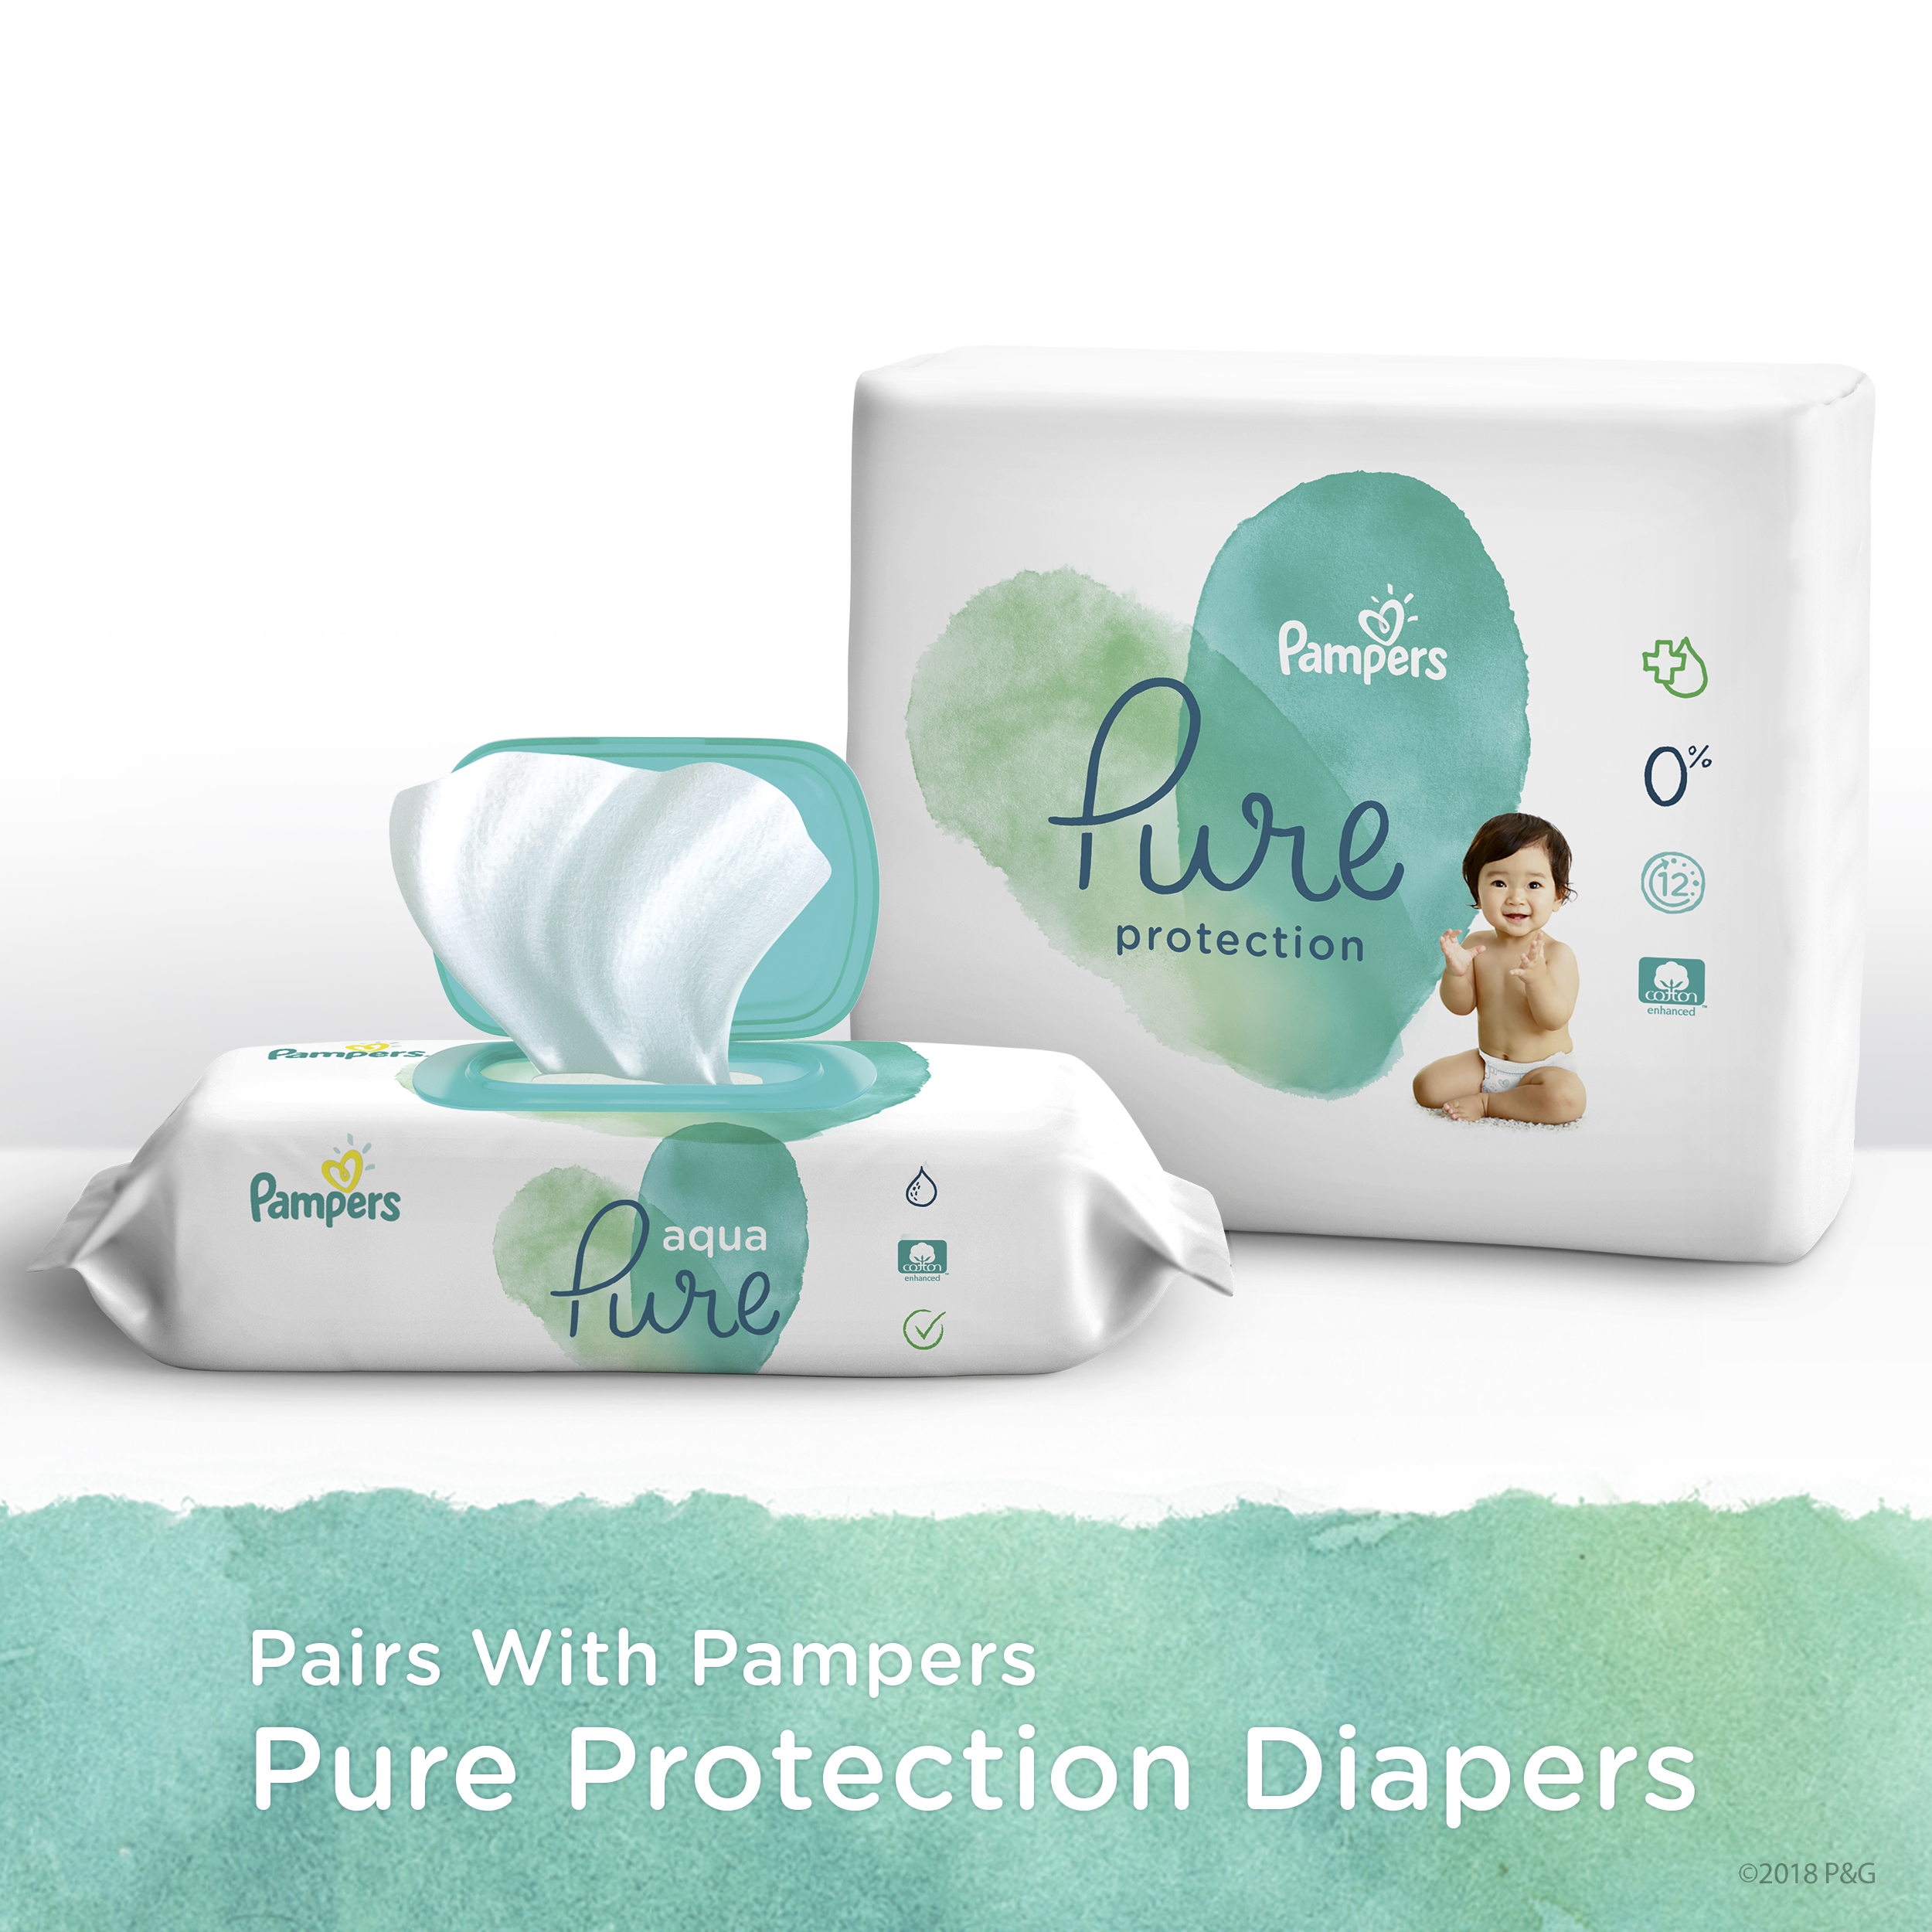 Pairs with Pampers - Oure Protection Diapers